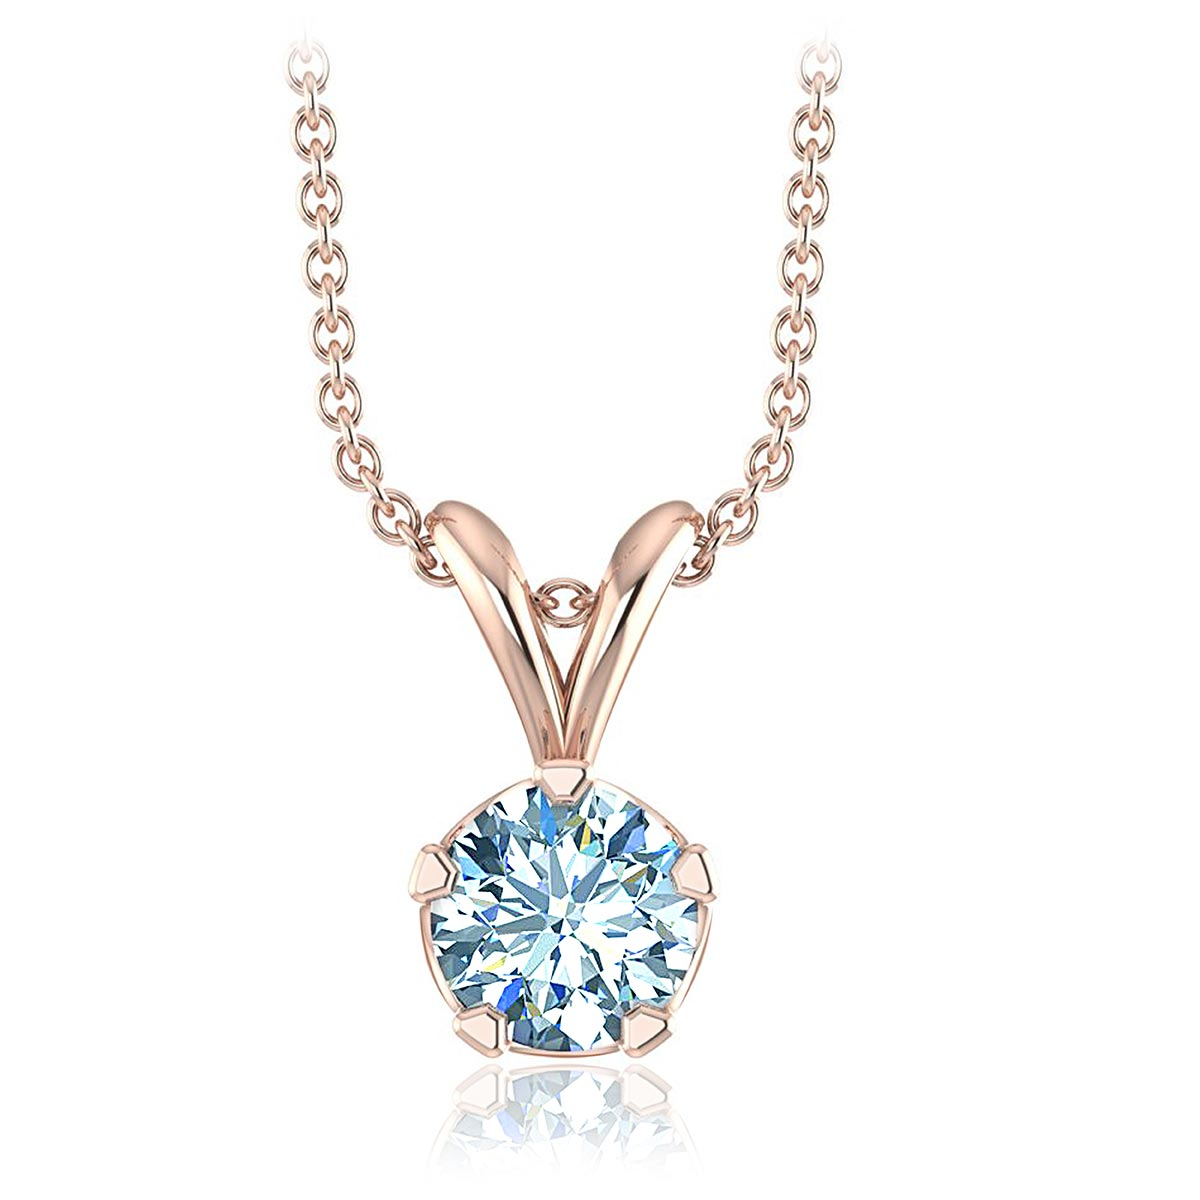 Loyauté Diamond Necklace (1/2 CT. TW.)